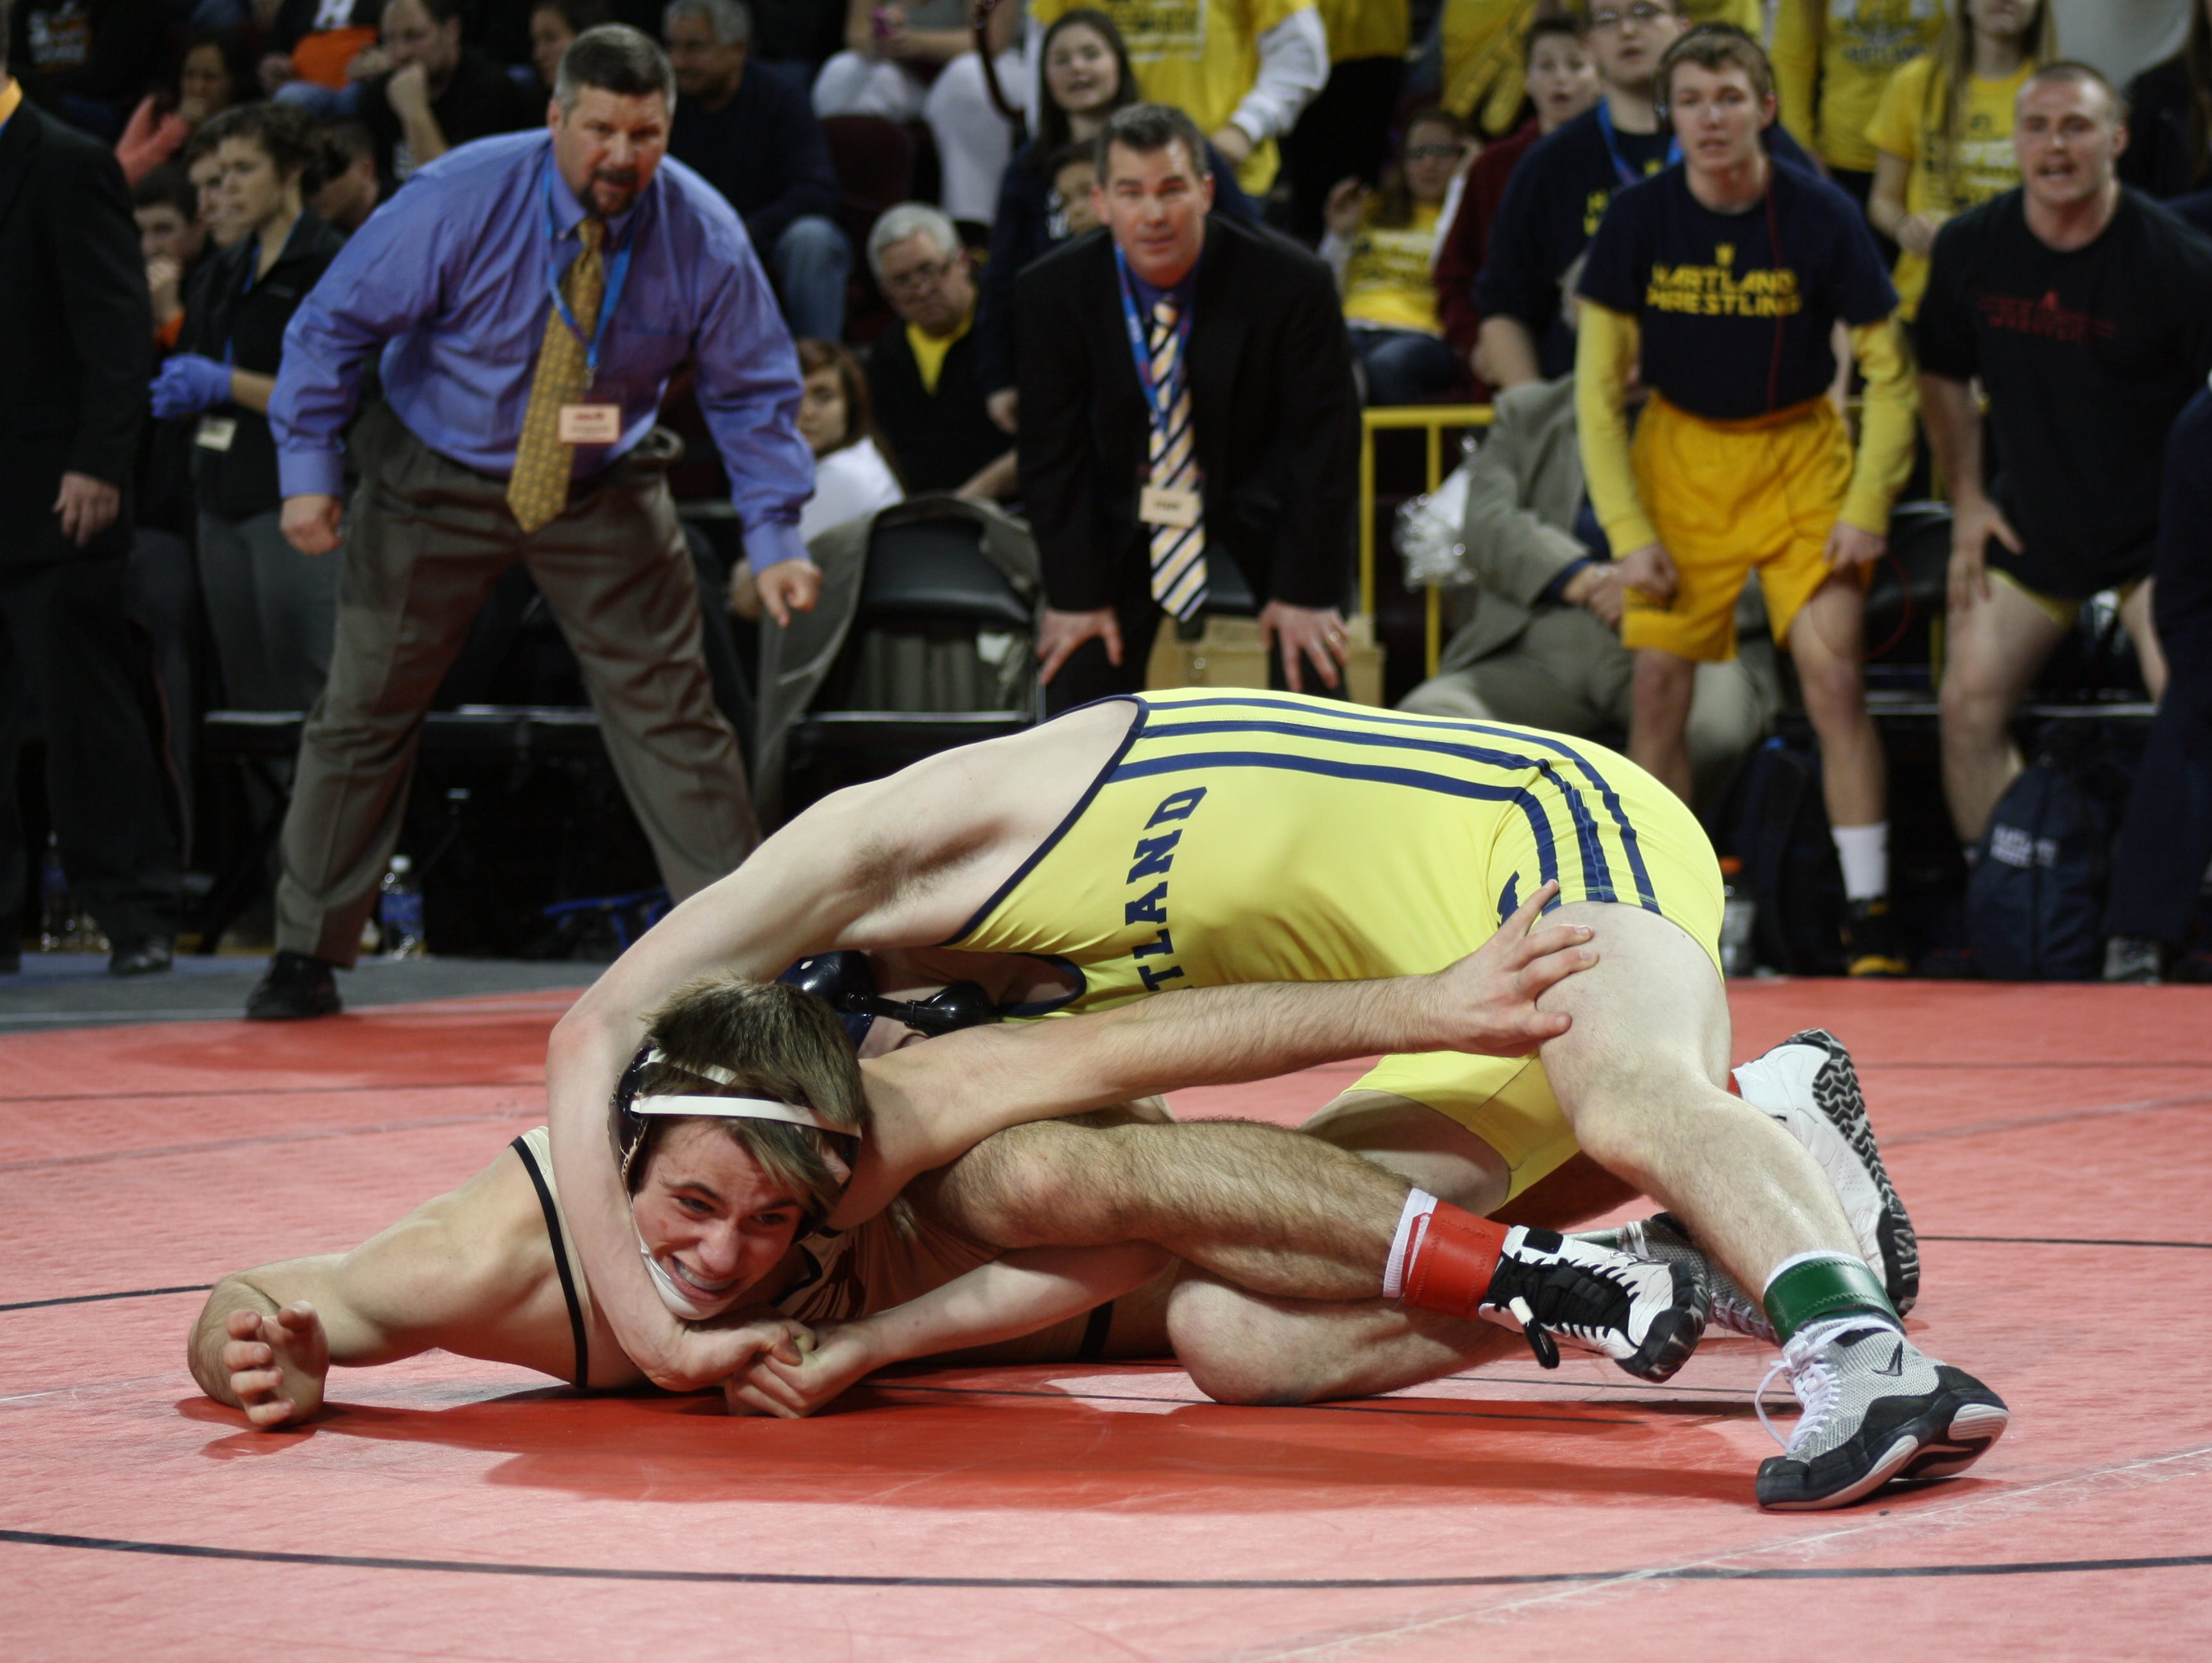 Hartland's Nick DiNobile, top, wrestles Davison's Brian Case. Case won the Div. 1 match, 9-3, at 135 pounds.